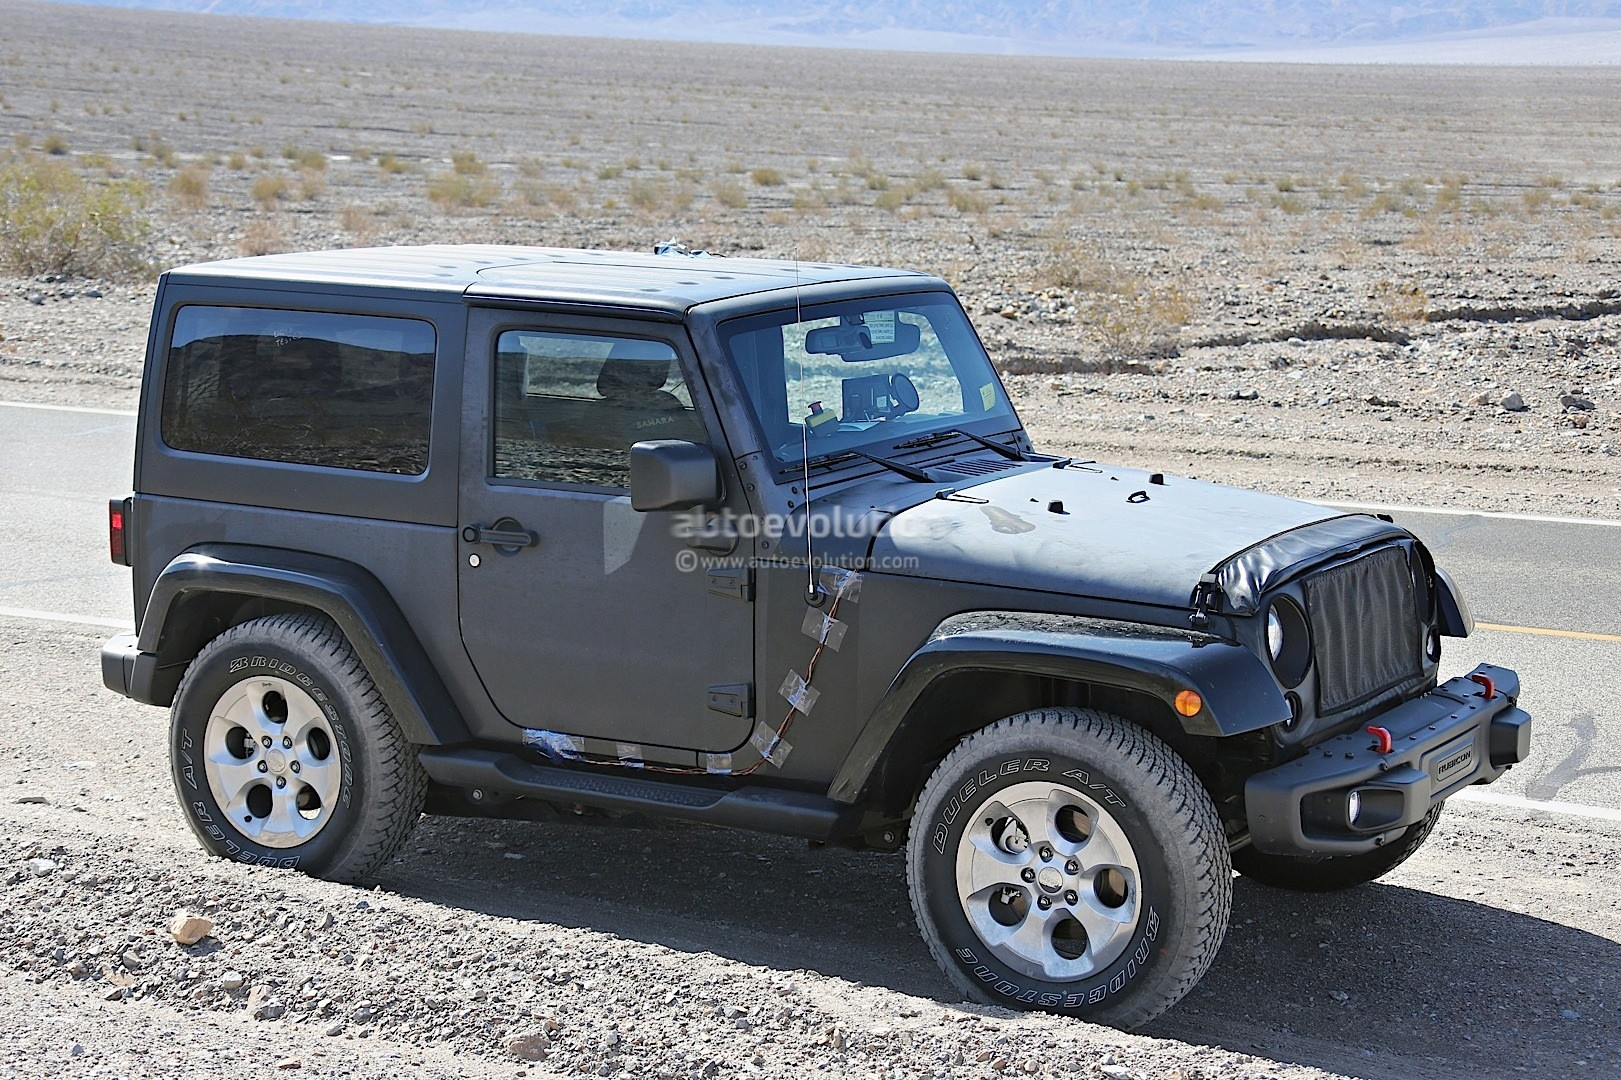 new 2018 jeep wrangler spied testing in the desert will grow in length autoevolution. Black Bedroom Furniture Sets. Home Design Ideas